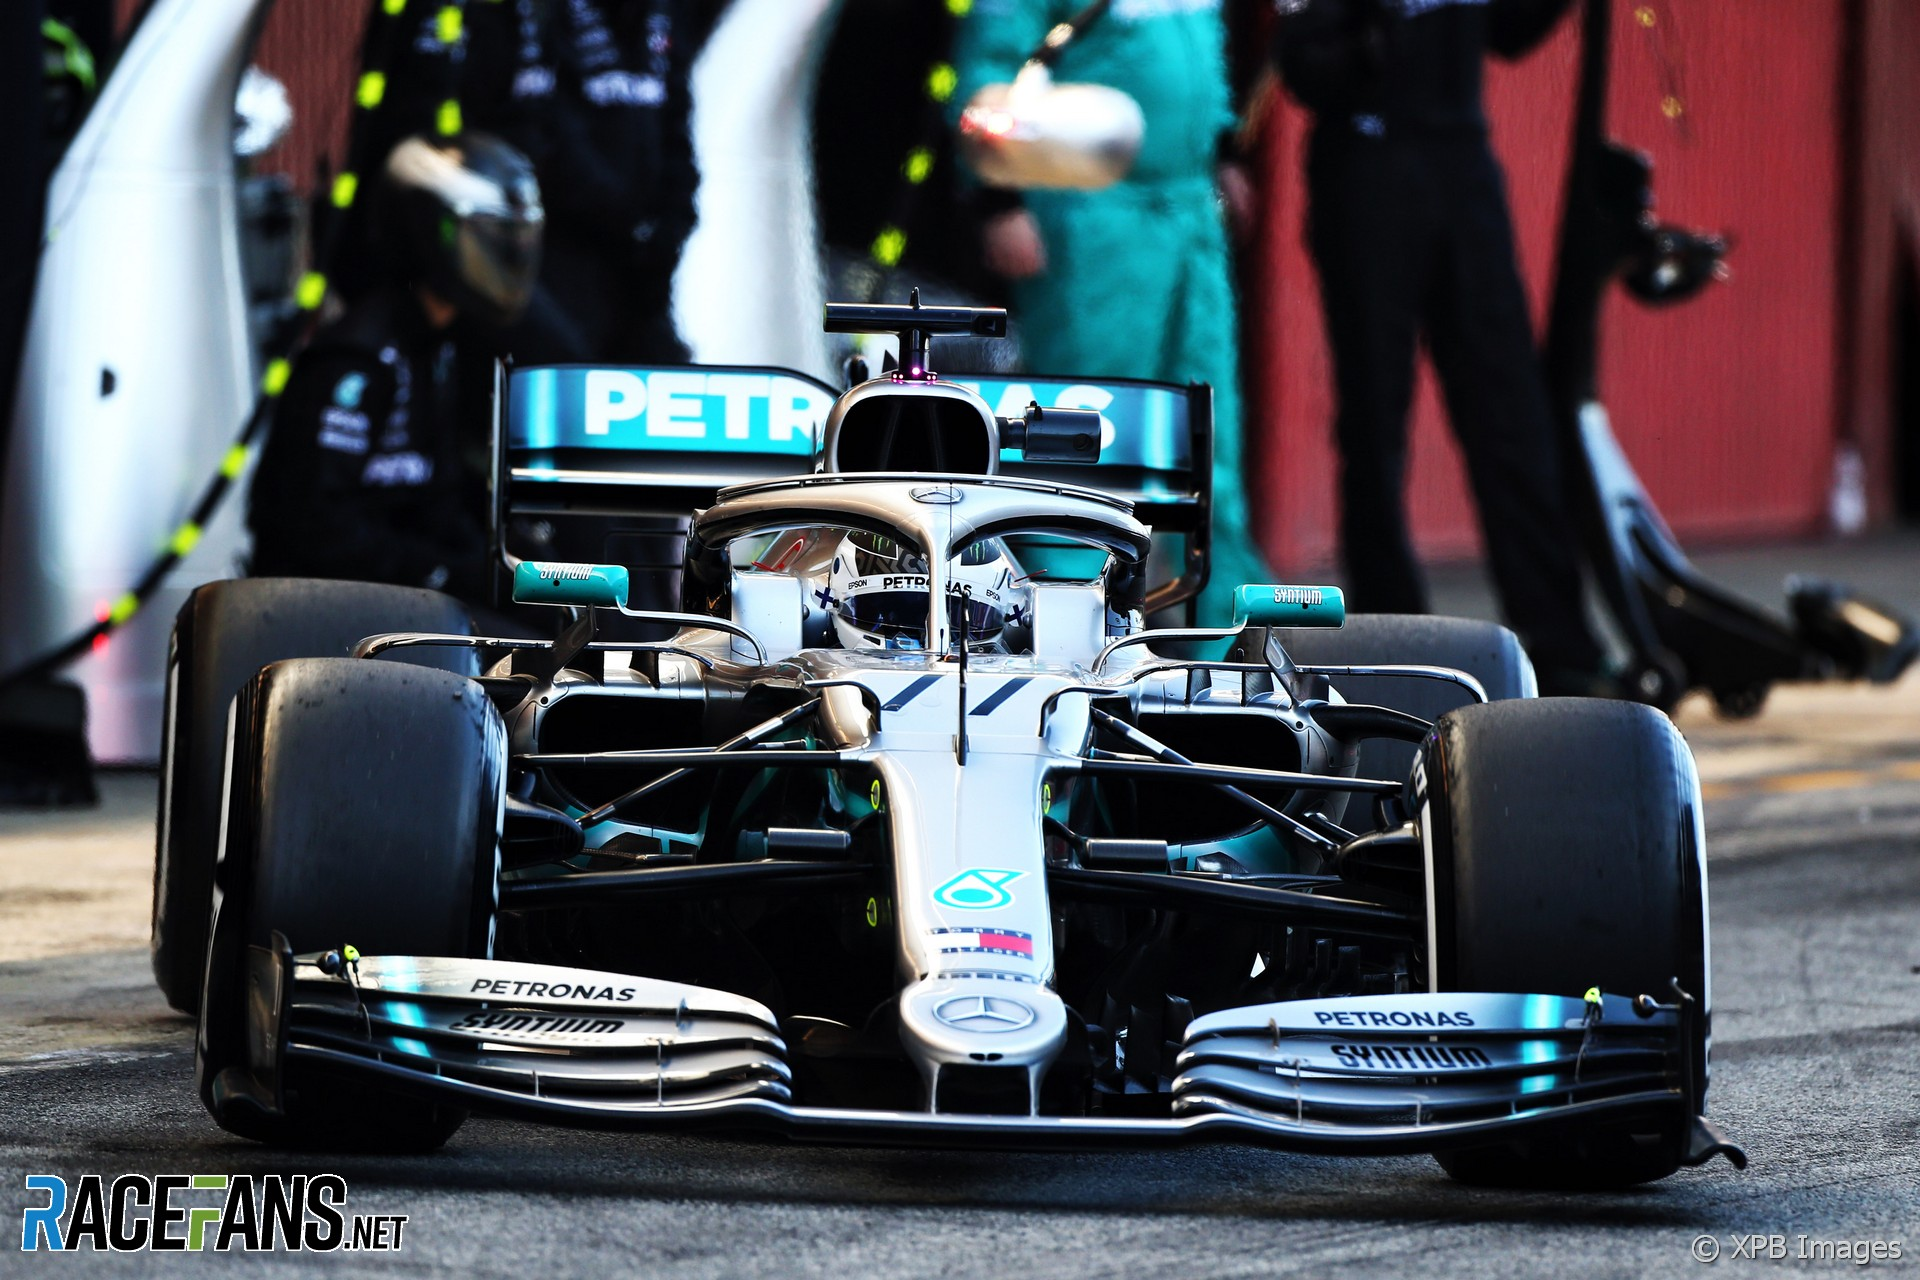 bottas unsure if mercedes will be in contention for victory in melbourne racefans https www racefans net 2019 02 28 bottas unsure if mercedes will be in contention for victory in melbourne